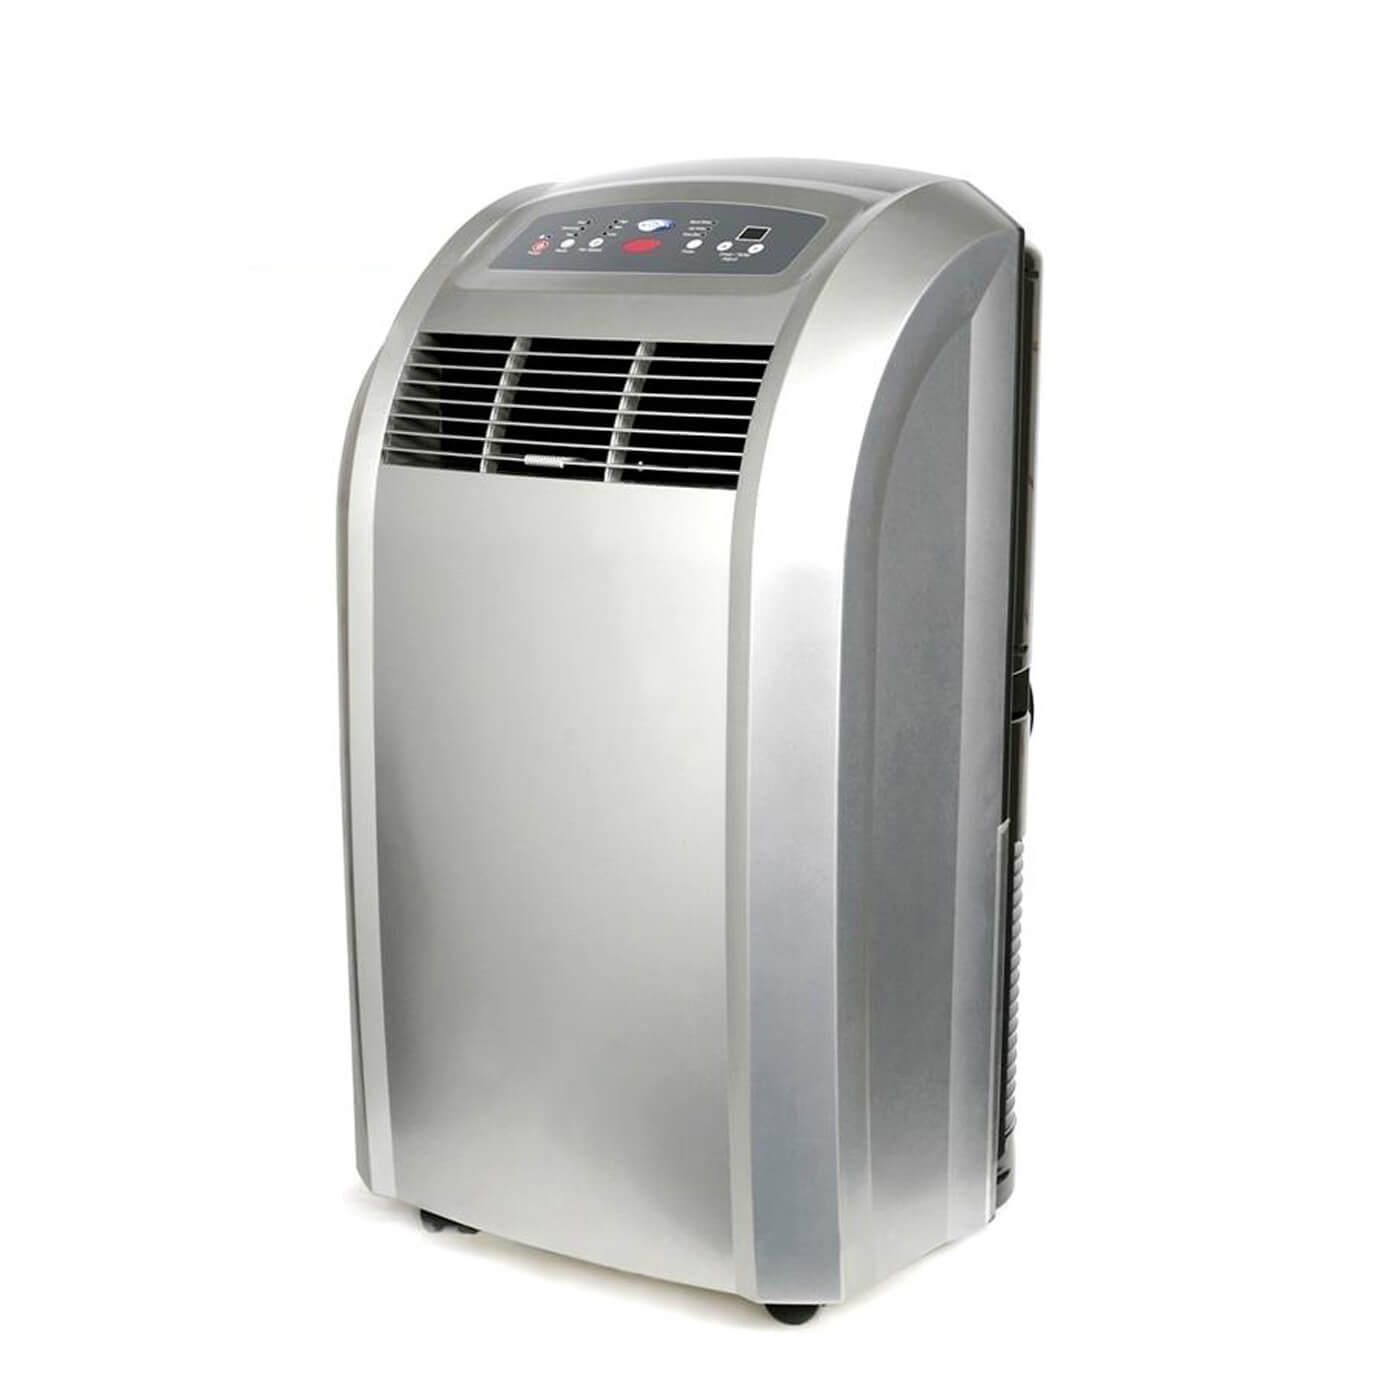 Whynter ARC-12S 12,000 BTU Portable Air Conditioner